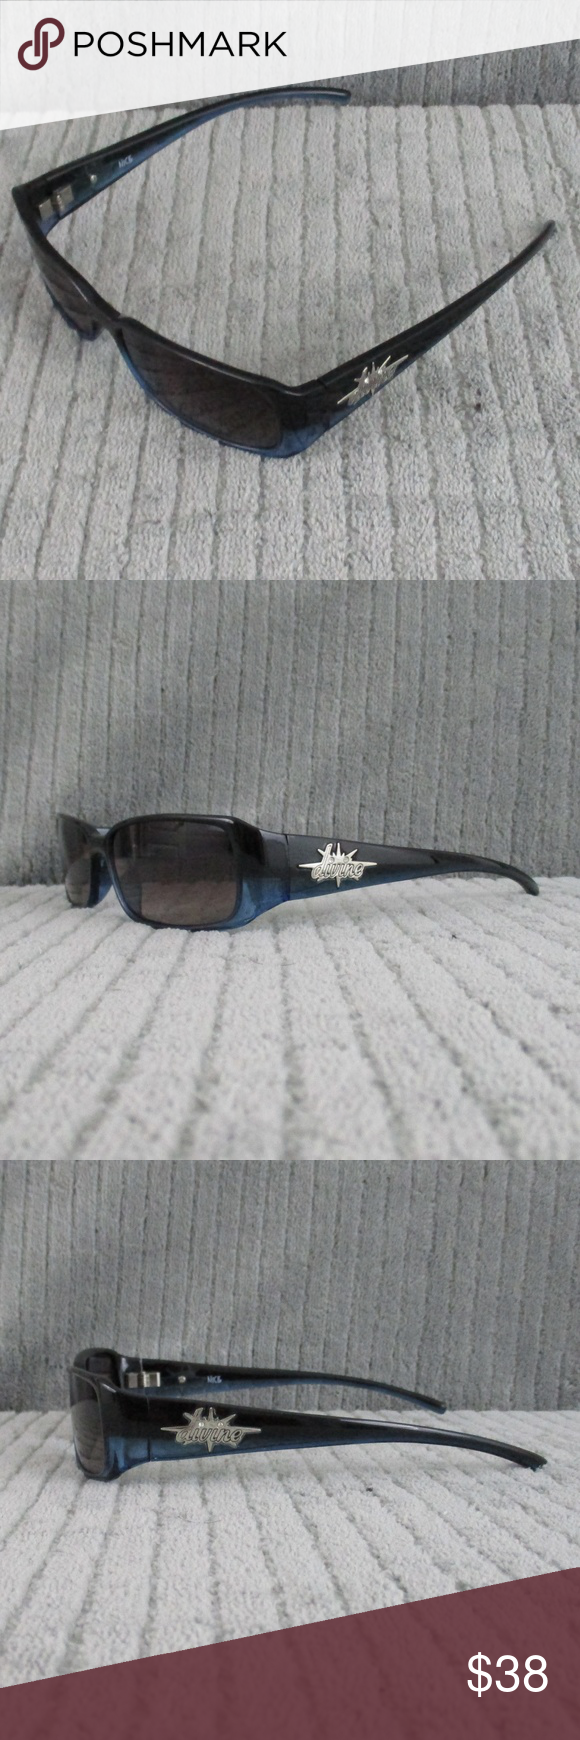 ee16bab0420f8 Nice Sunglasses by Divine Black Fade Smoke Grad Divine Eyewear Nice  sunglasses with black to blue composite frame and smoke gradient composite  lens.